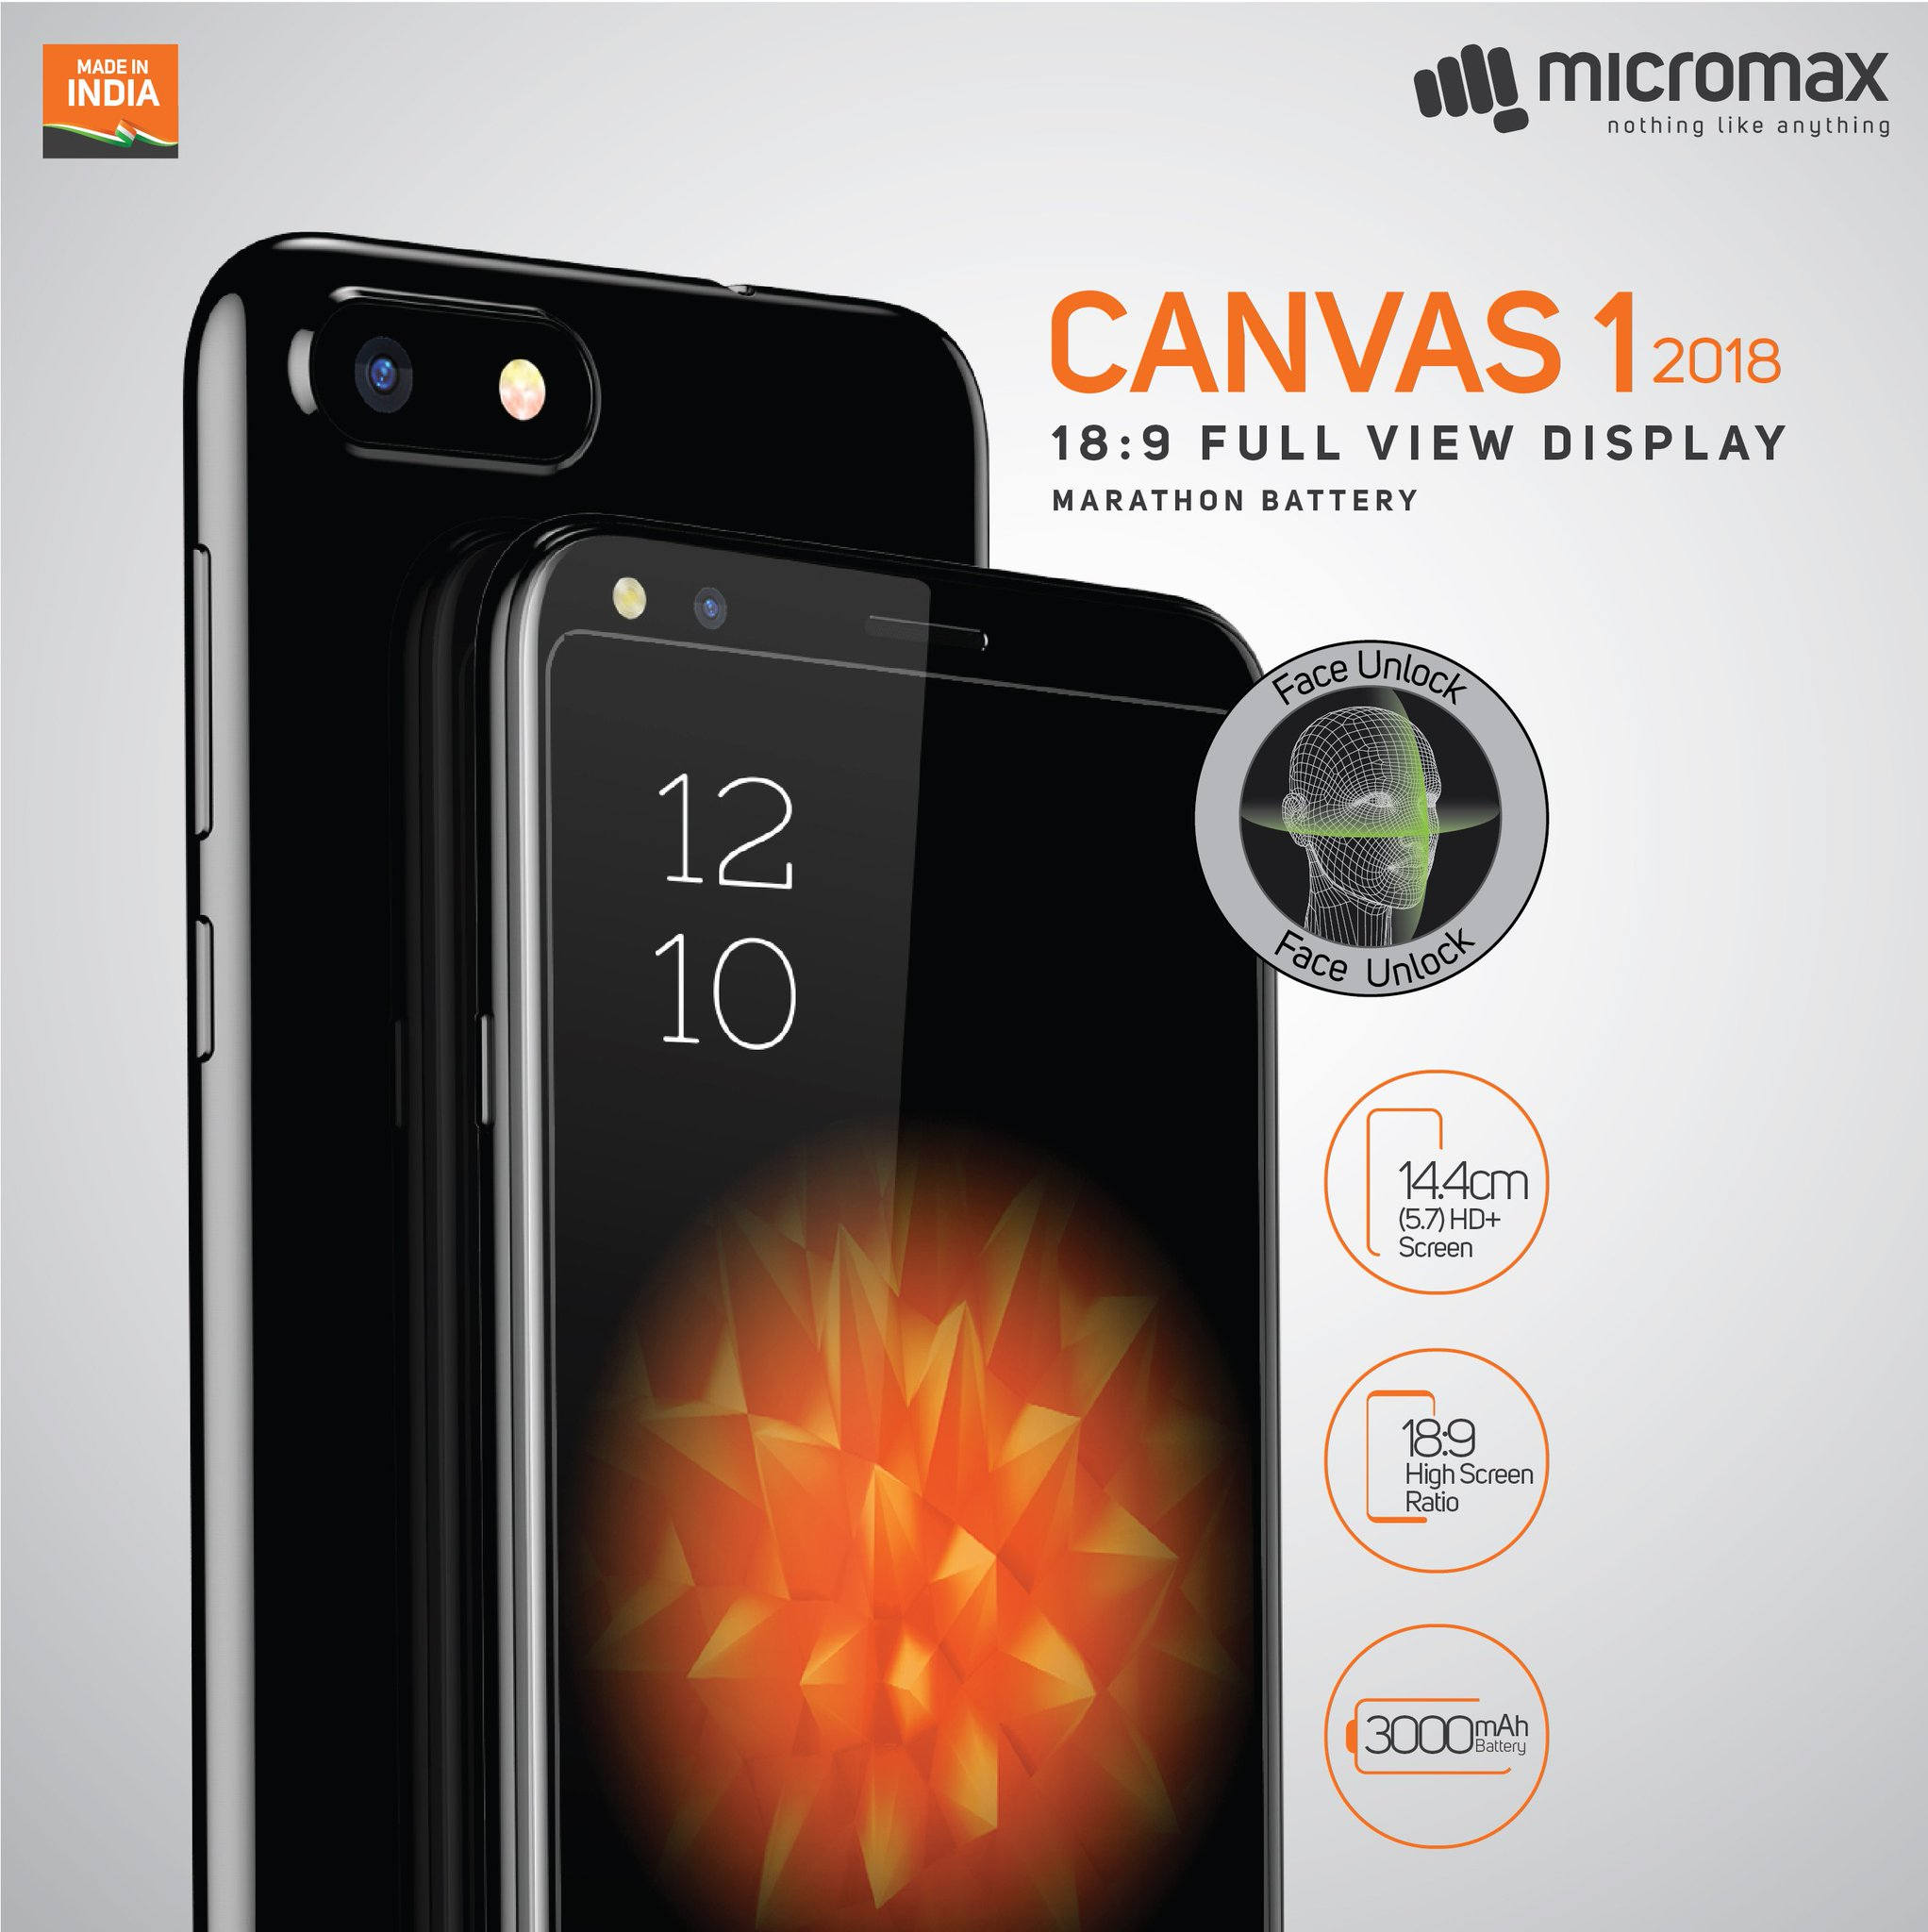 Micromax Canvas 1 (2018) Features, Specifications, Price and Release Date